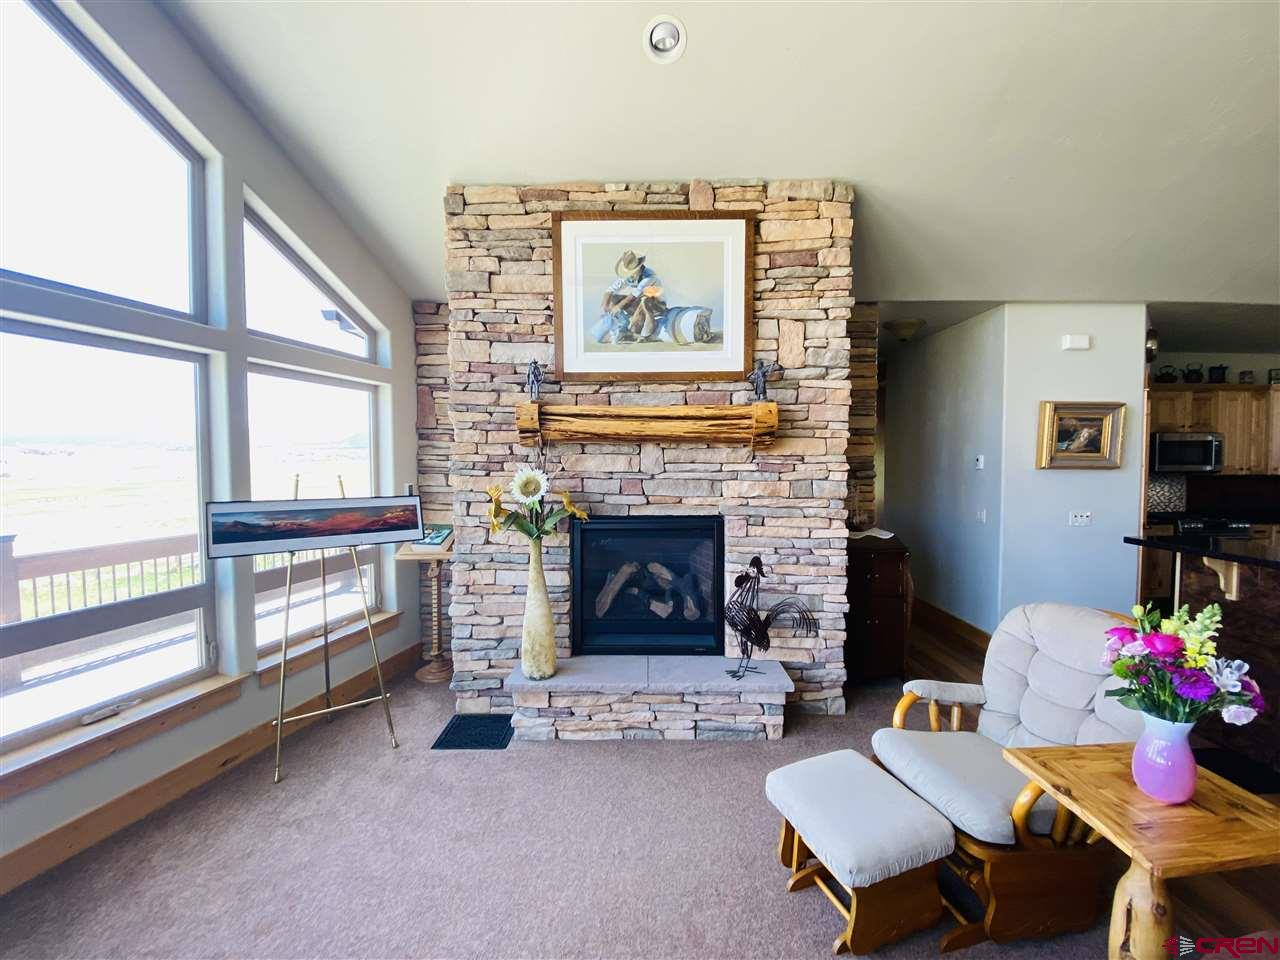 MLS# 769183 - 24 - 79712 Antler Trail, Crawford, CO 81415